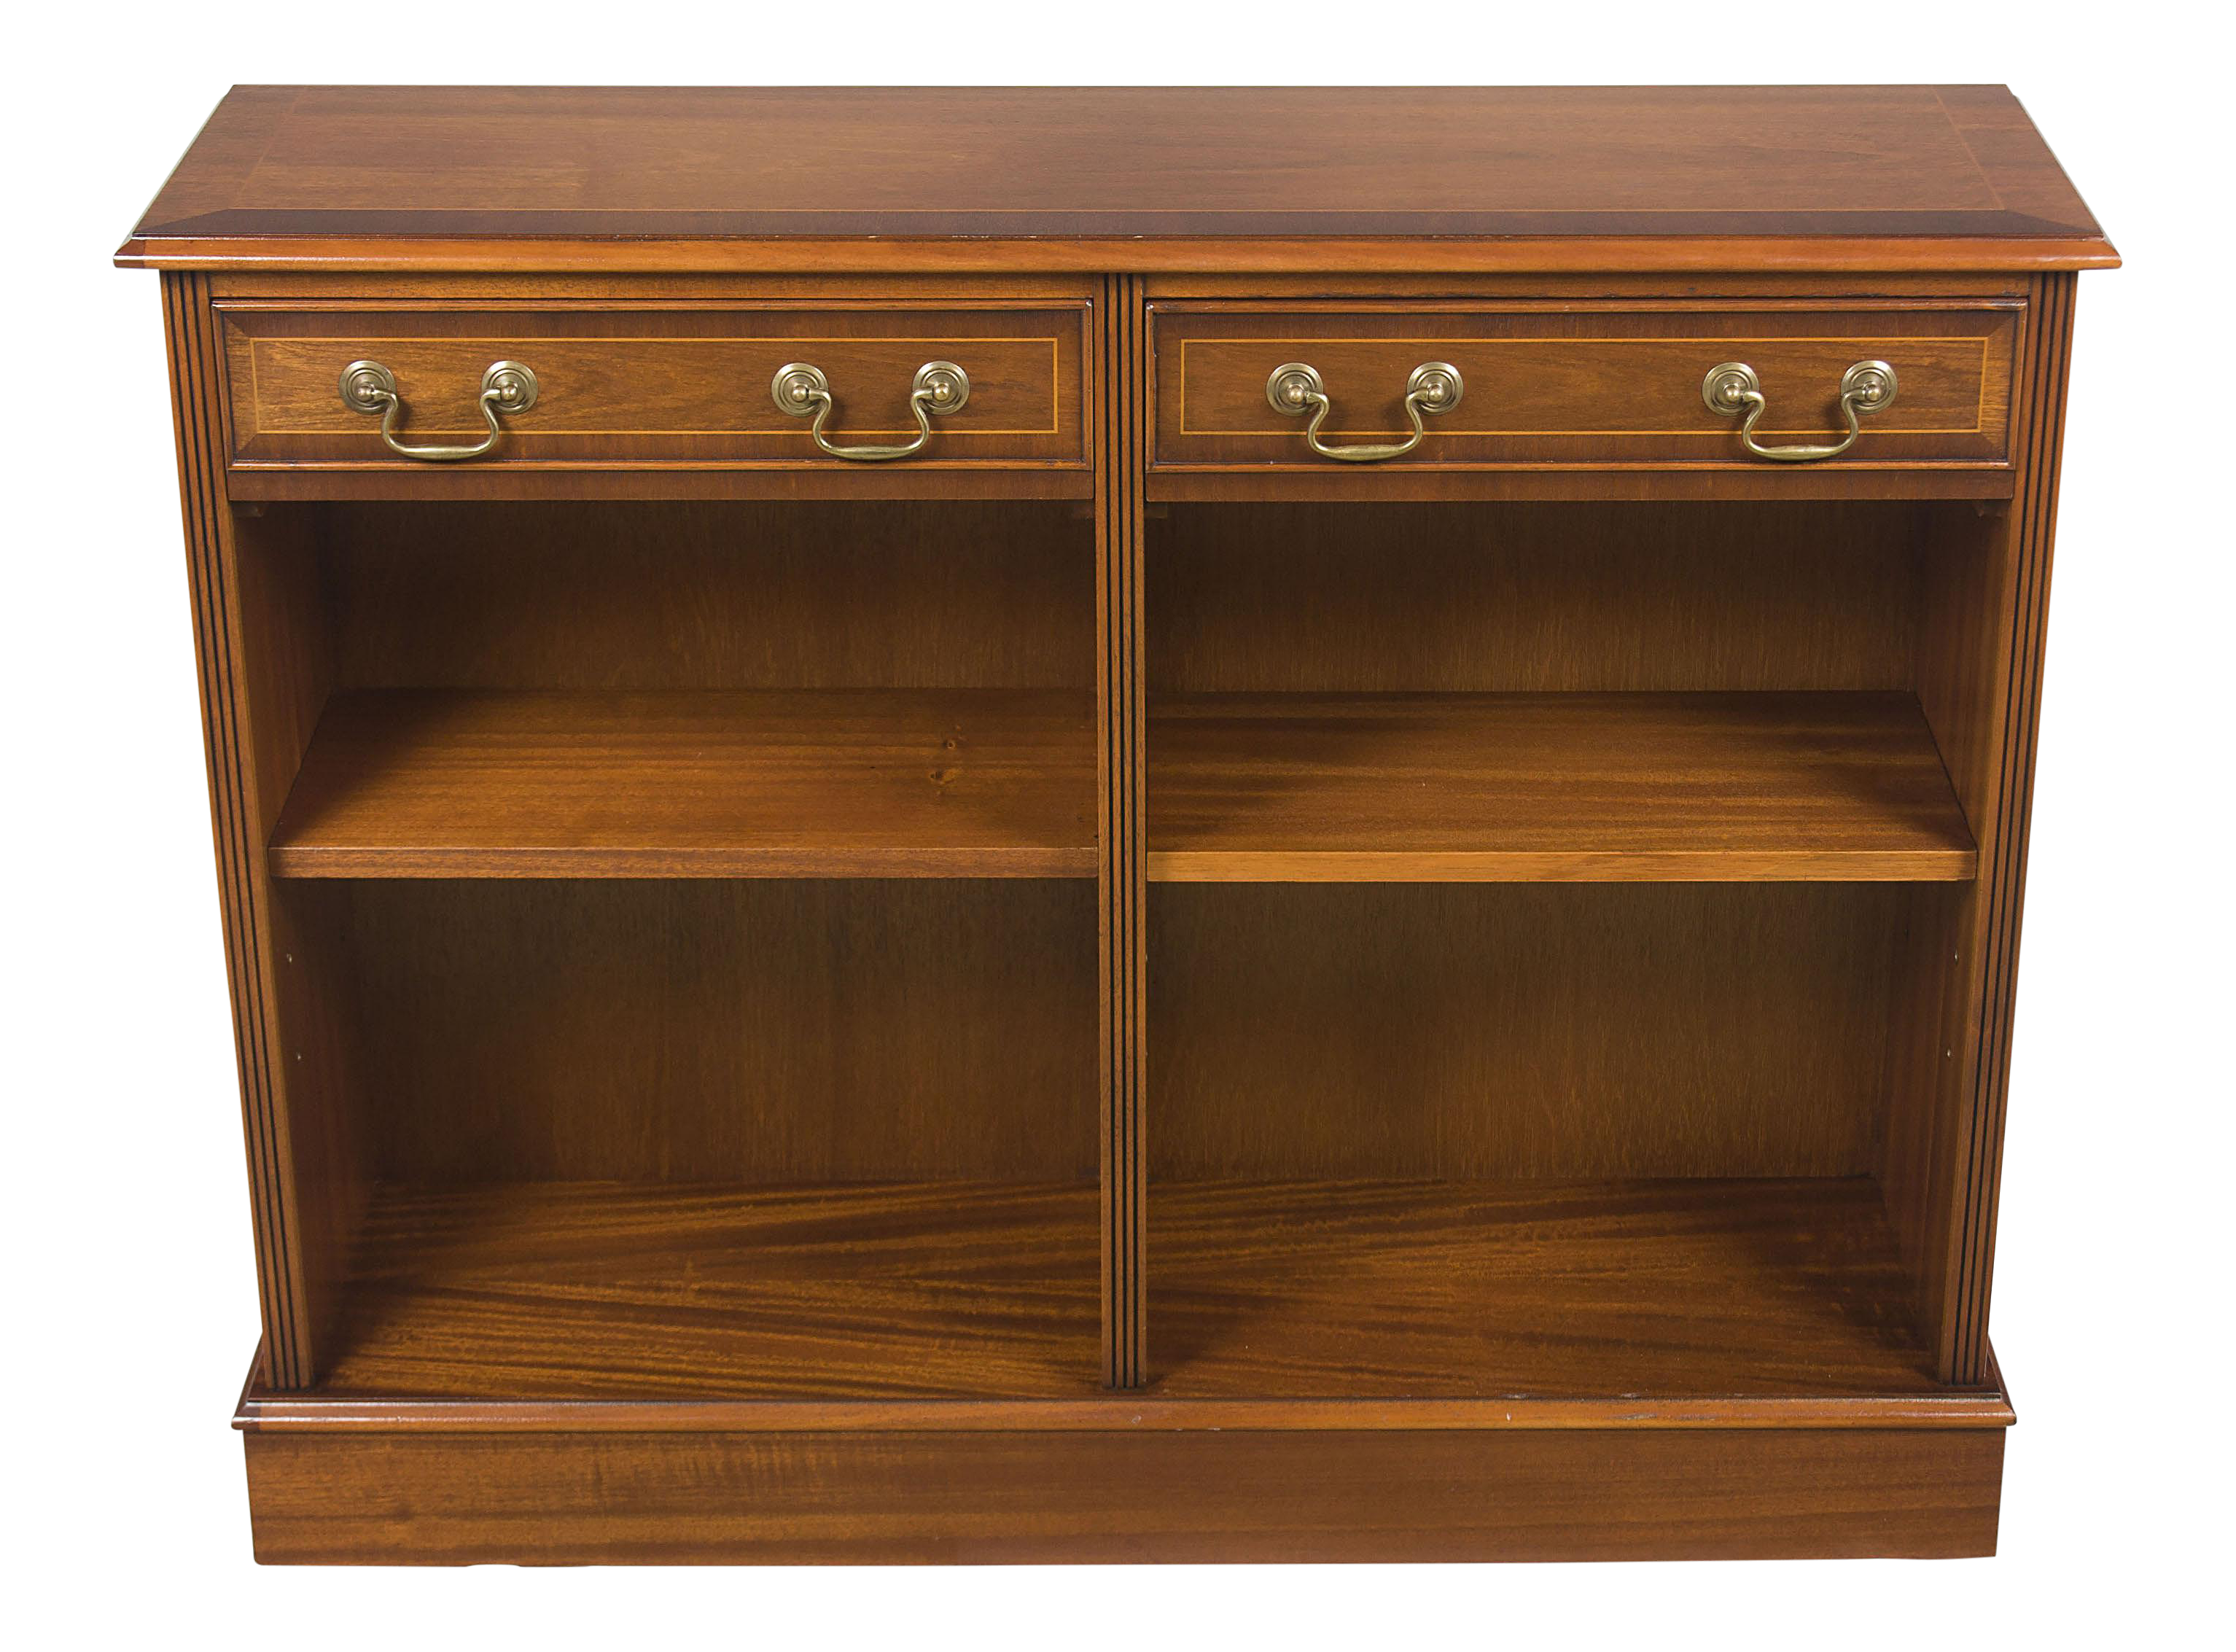 1960s Traditional Short Mahogany Narrow Open Bookcase With Drawers